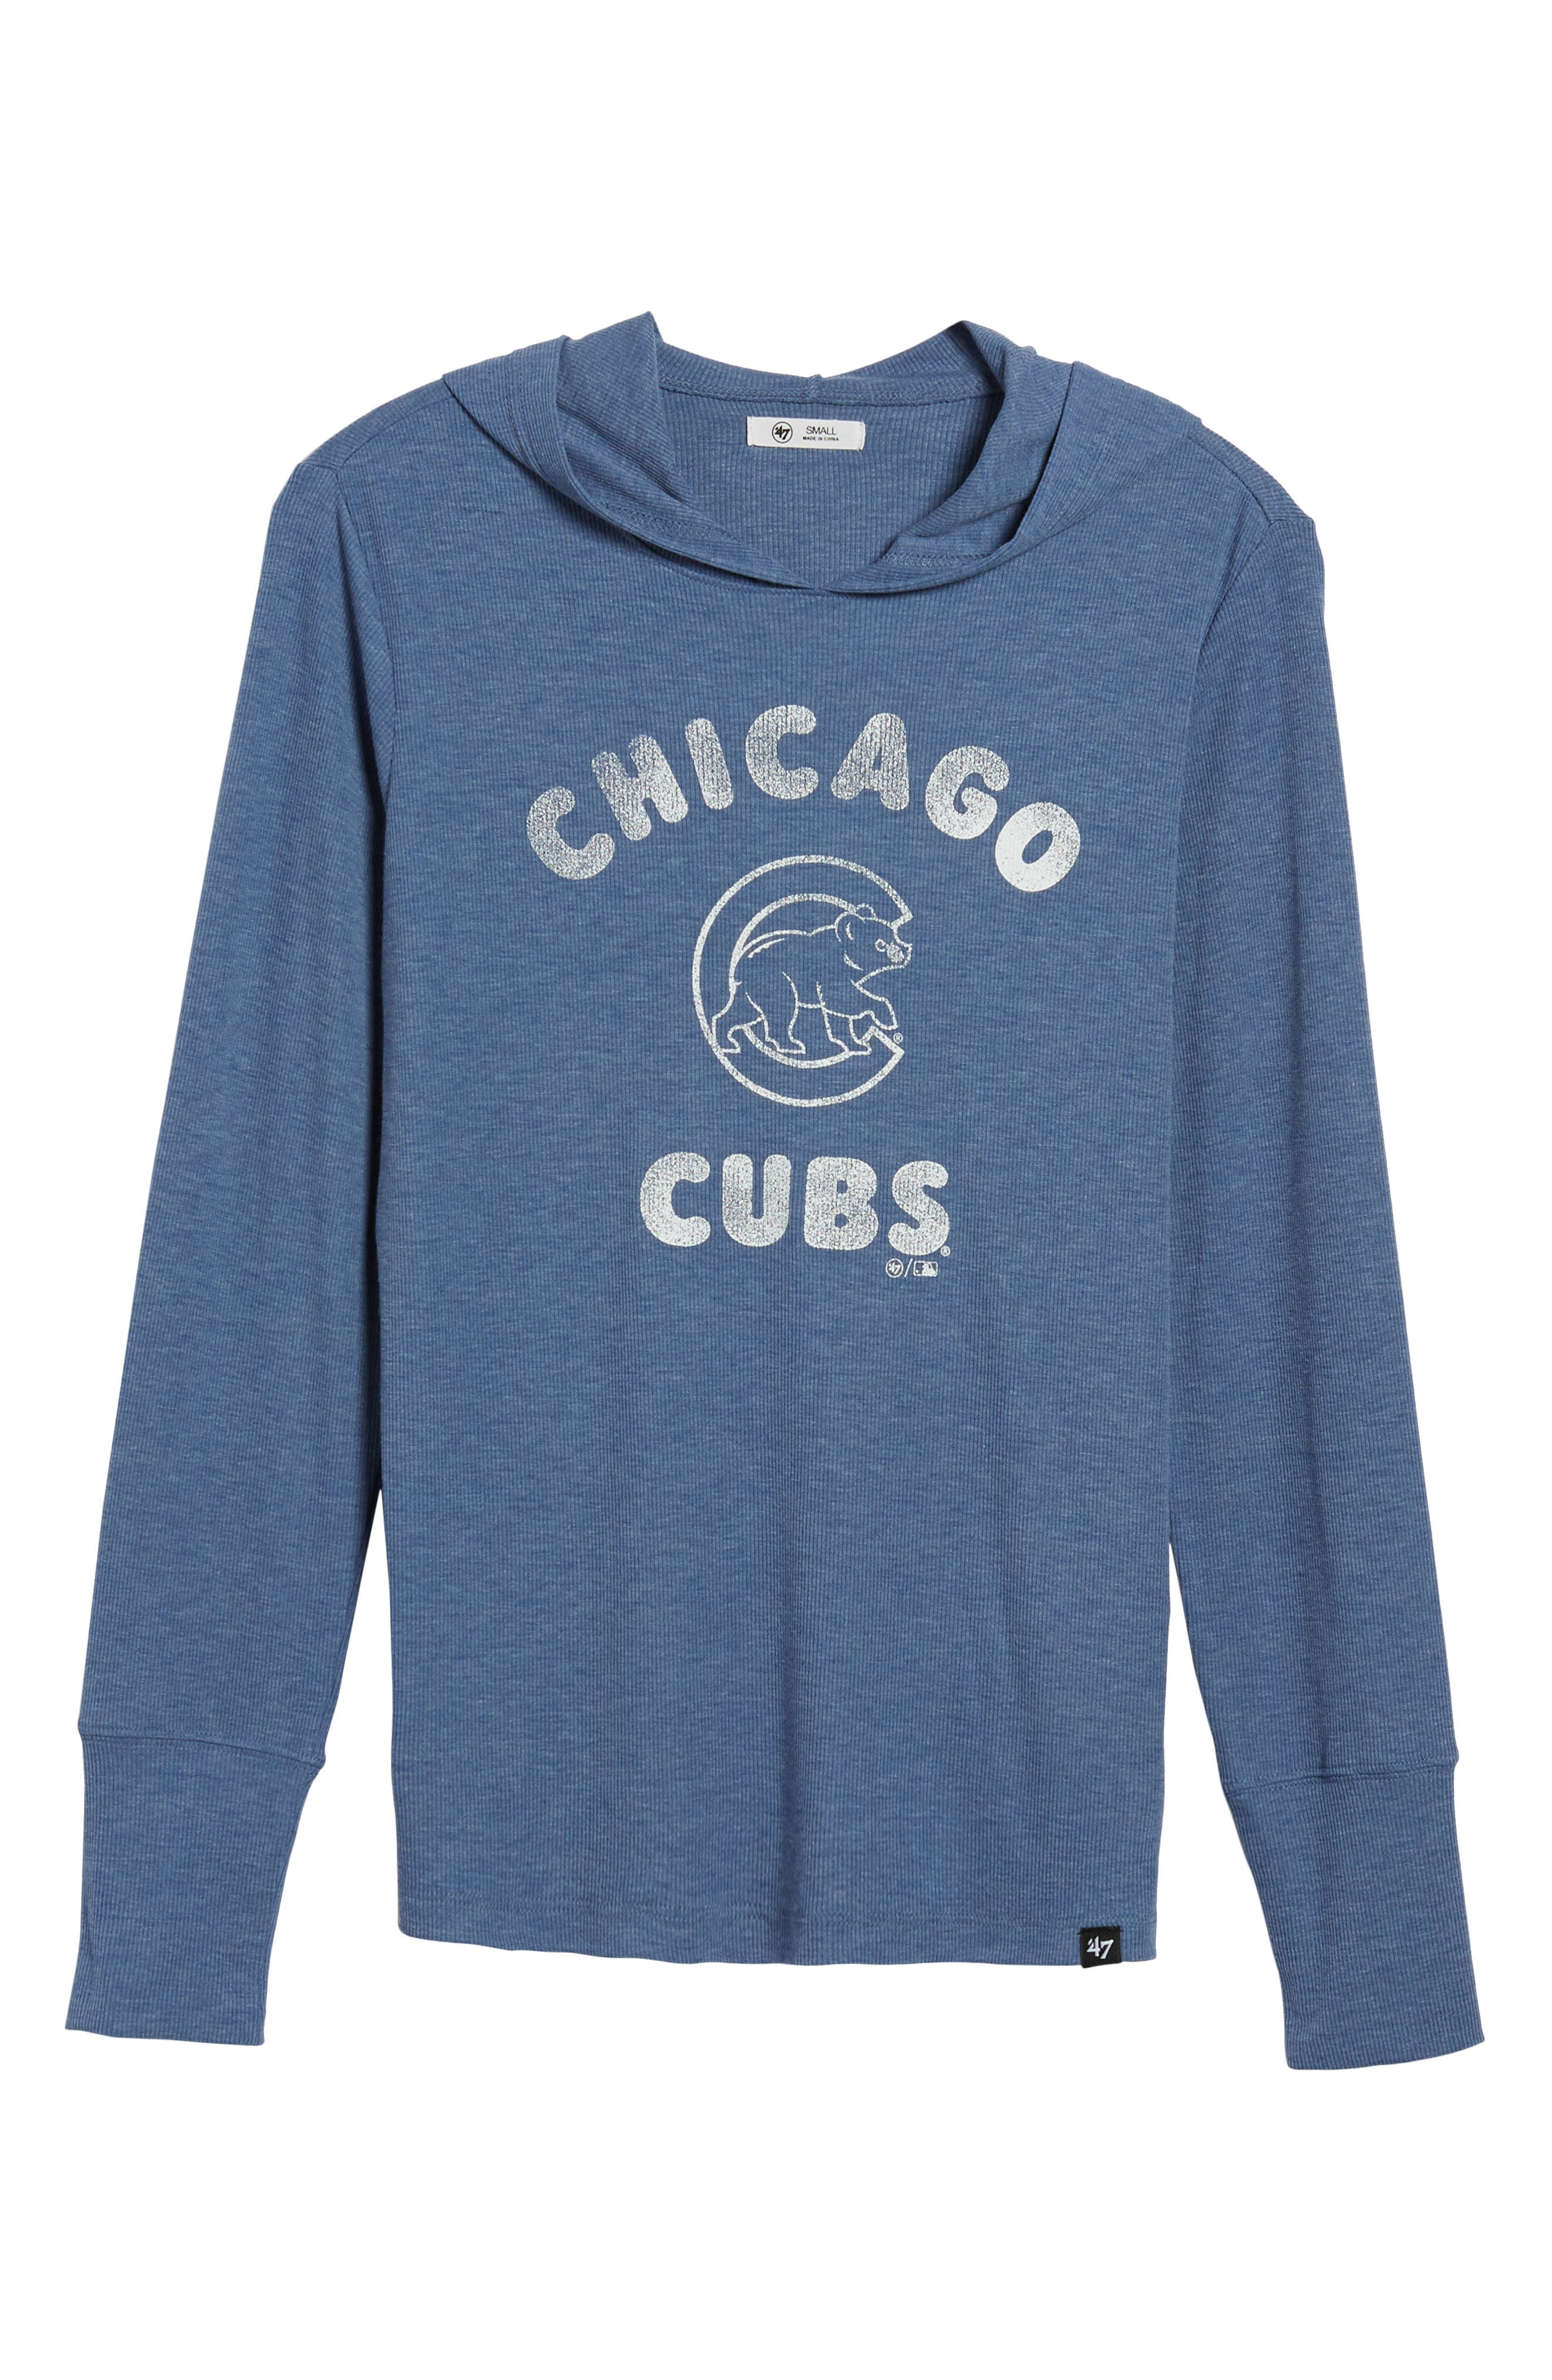 Campbell Chicago Cubs Rib Knit Hoodie,                             Alternate thumbnail 7, color,                             400